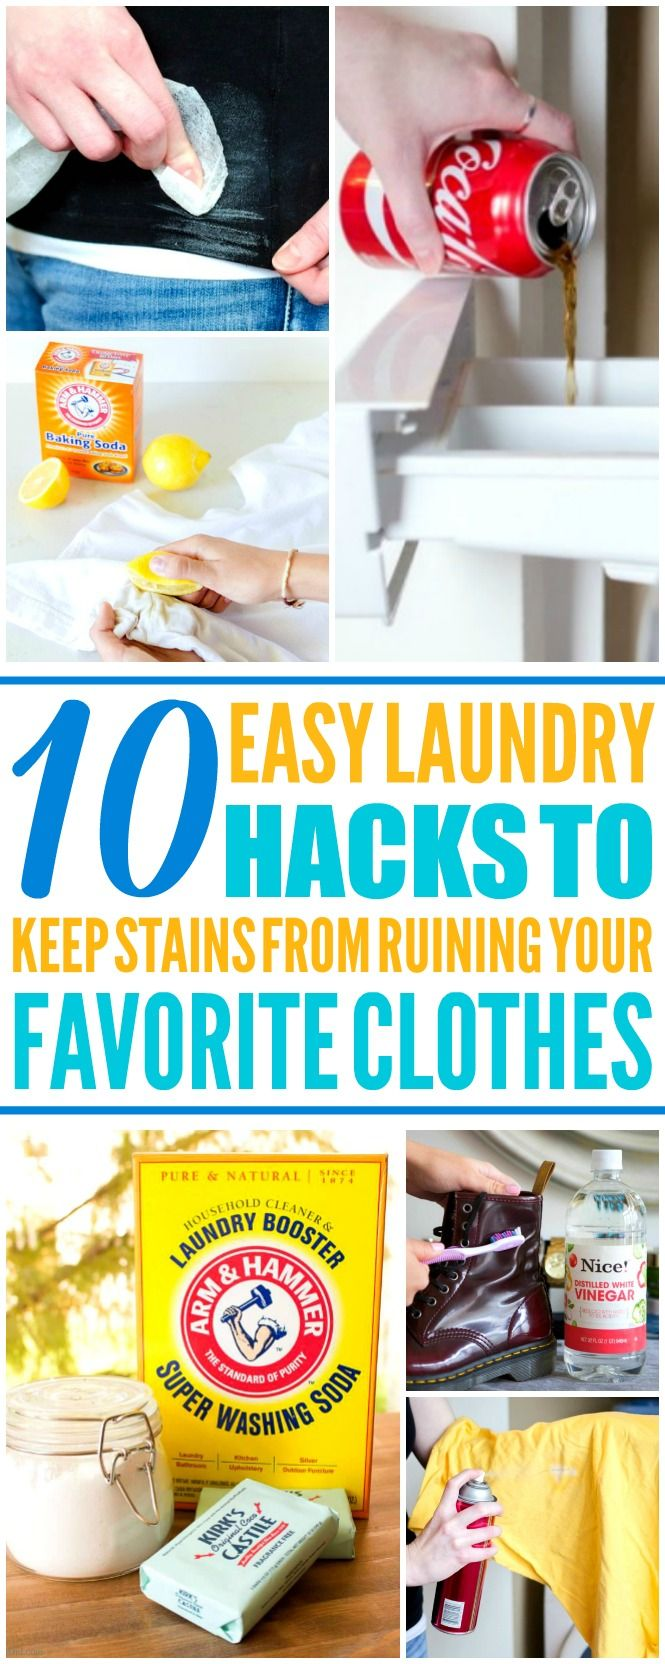 These 10 easy laundry hacks are THE BEST! I'm so happy I found these AWESOME tips! Now I have some great ways to get rid of stains! Definitely pinning!